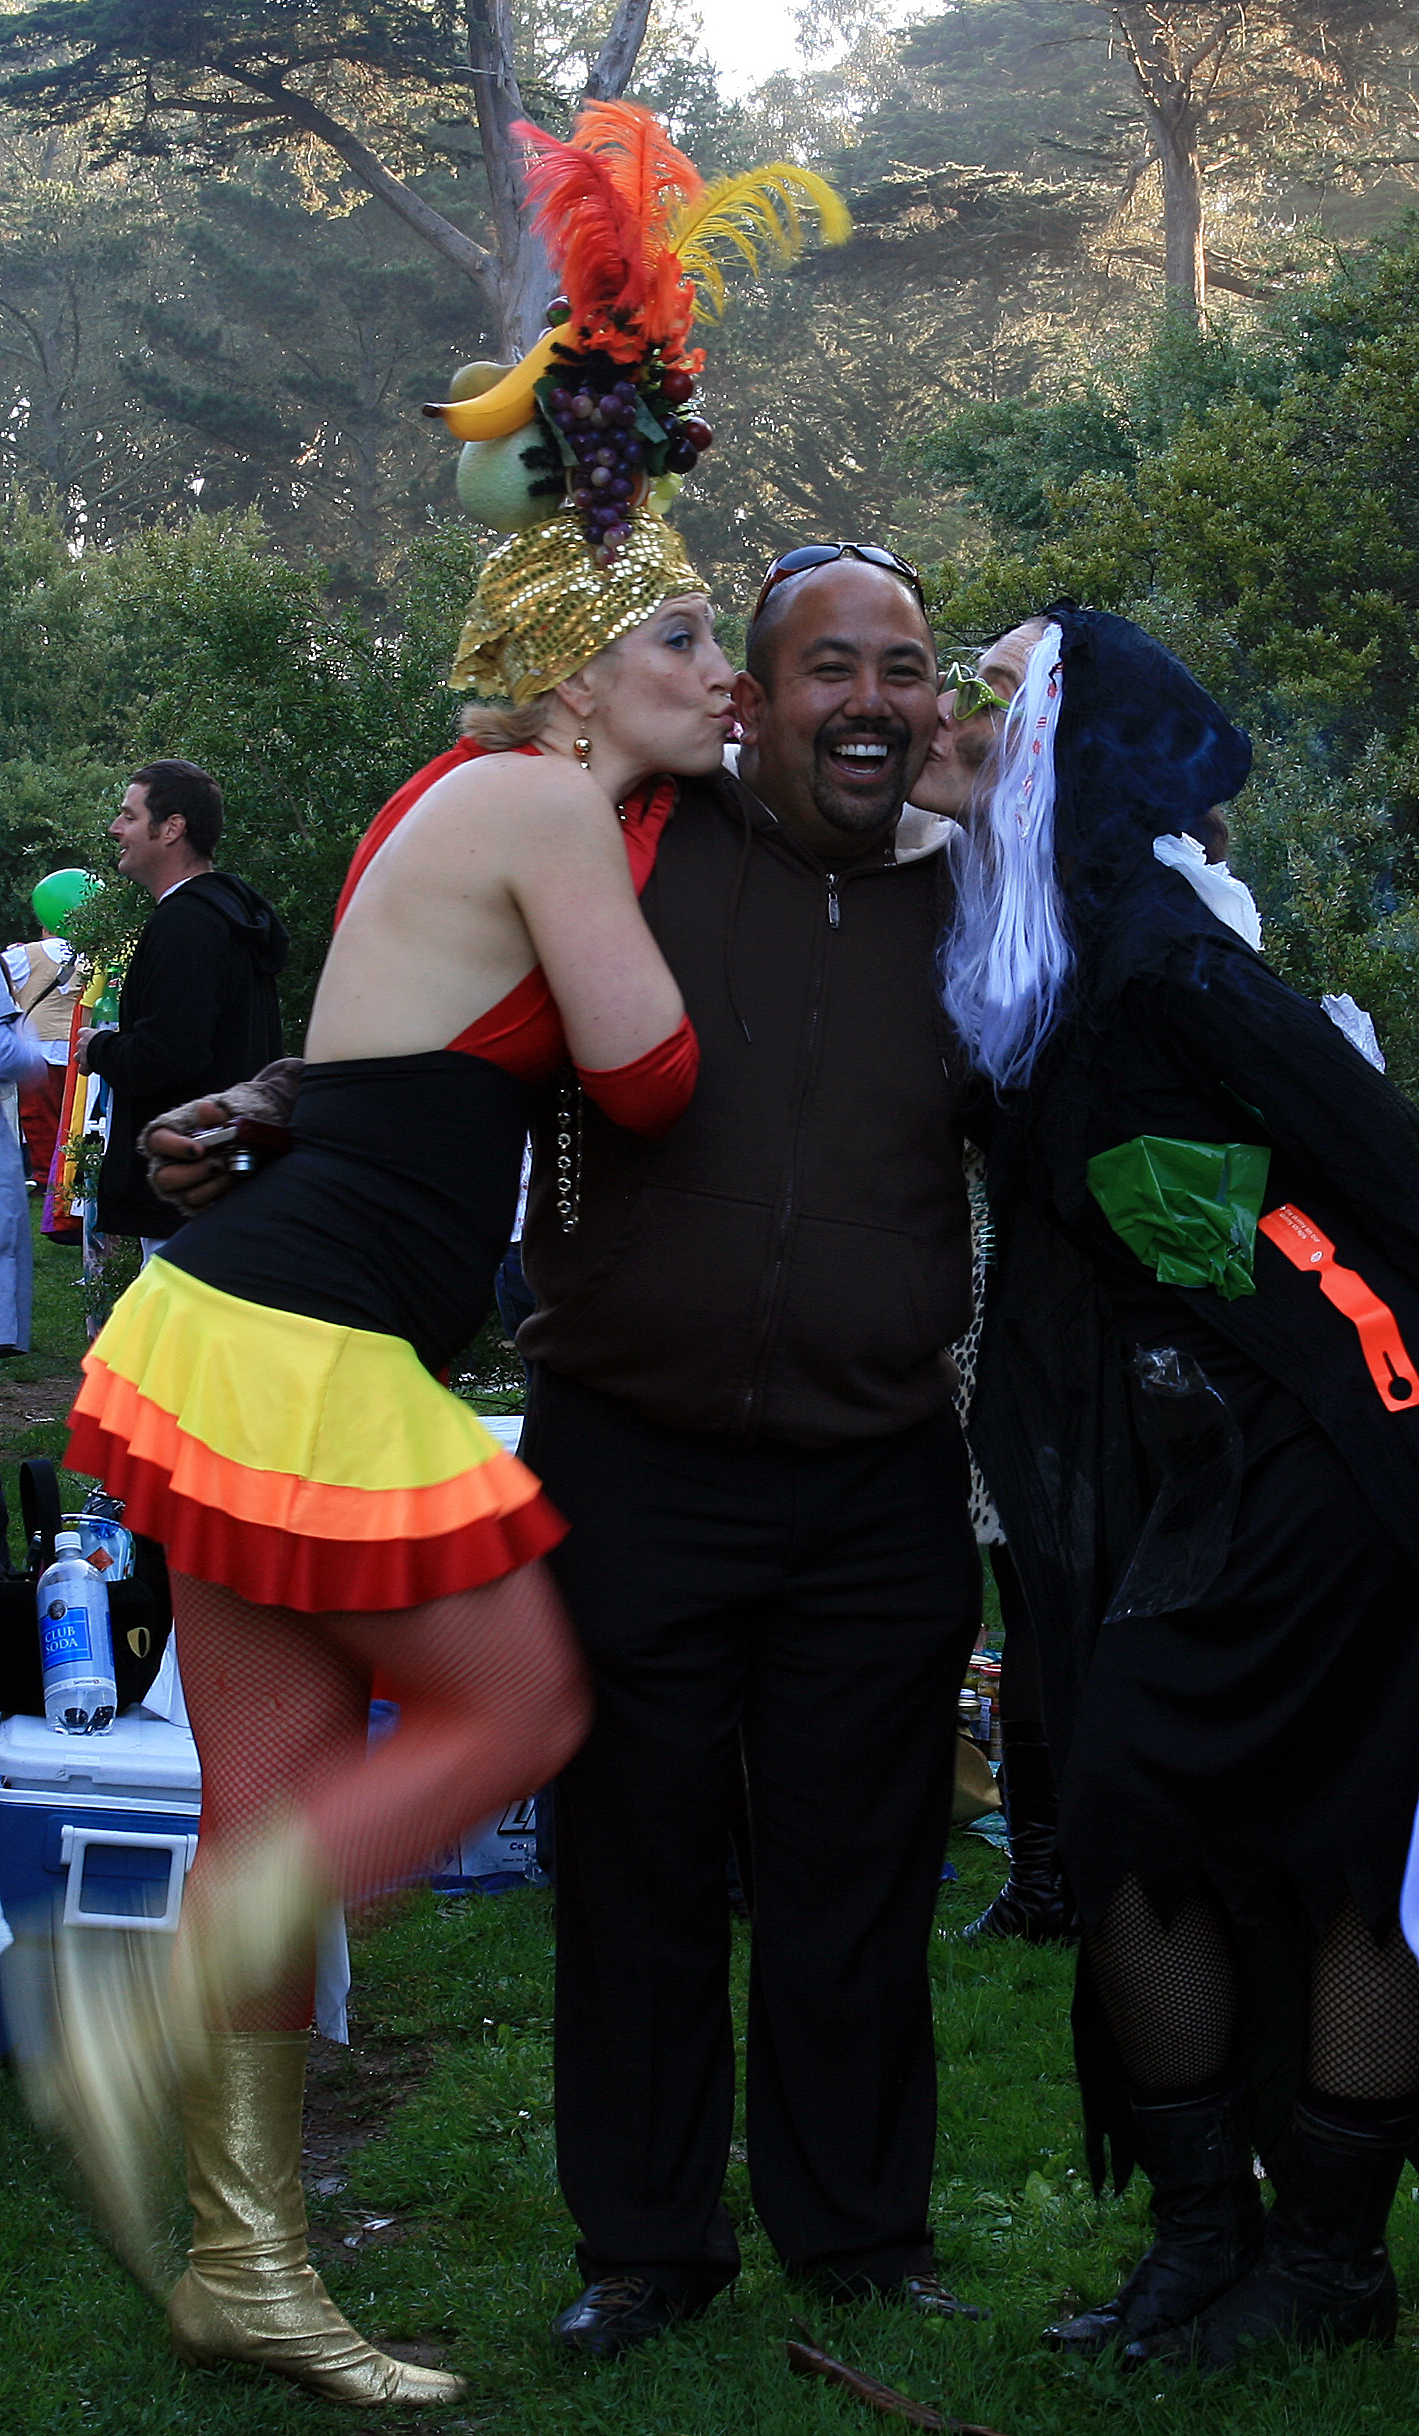 File:Halloween party in Golden Gate Park 1.jpg - Wikimedia Commons